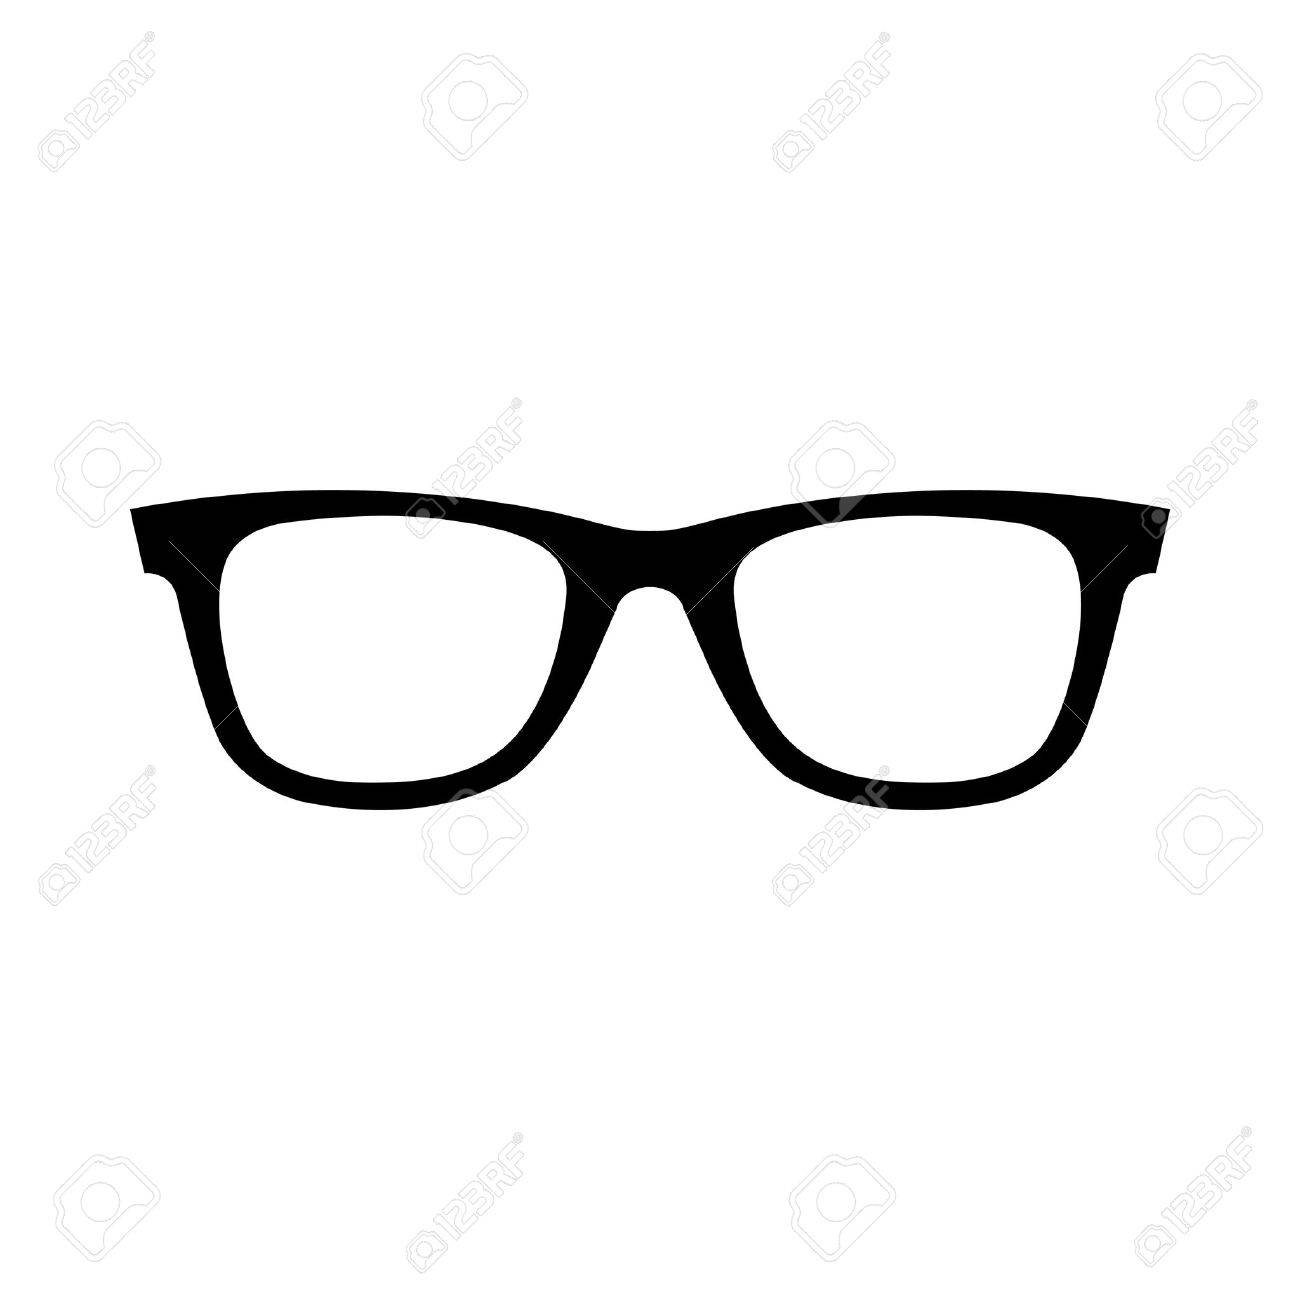 glasses vector icon royalty free cliparts vectors and stock rh 123rf com glasses vector illustration glasses vector icon